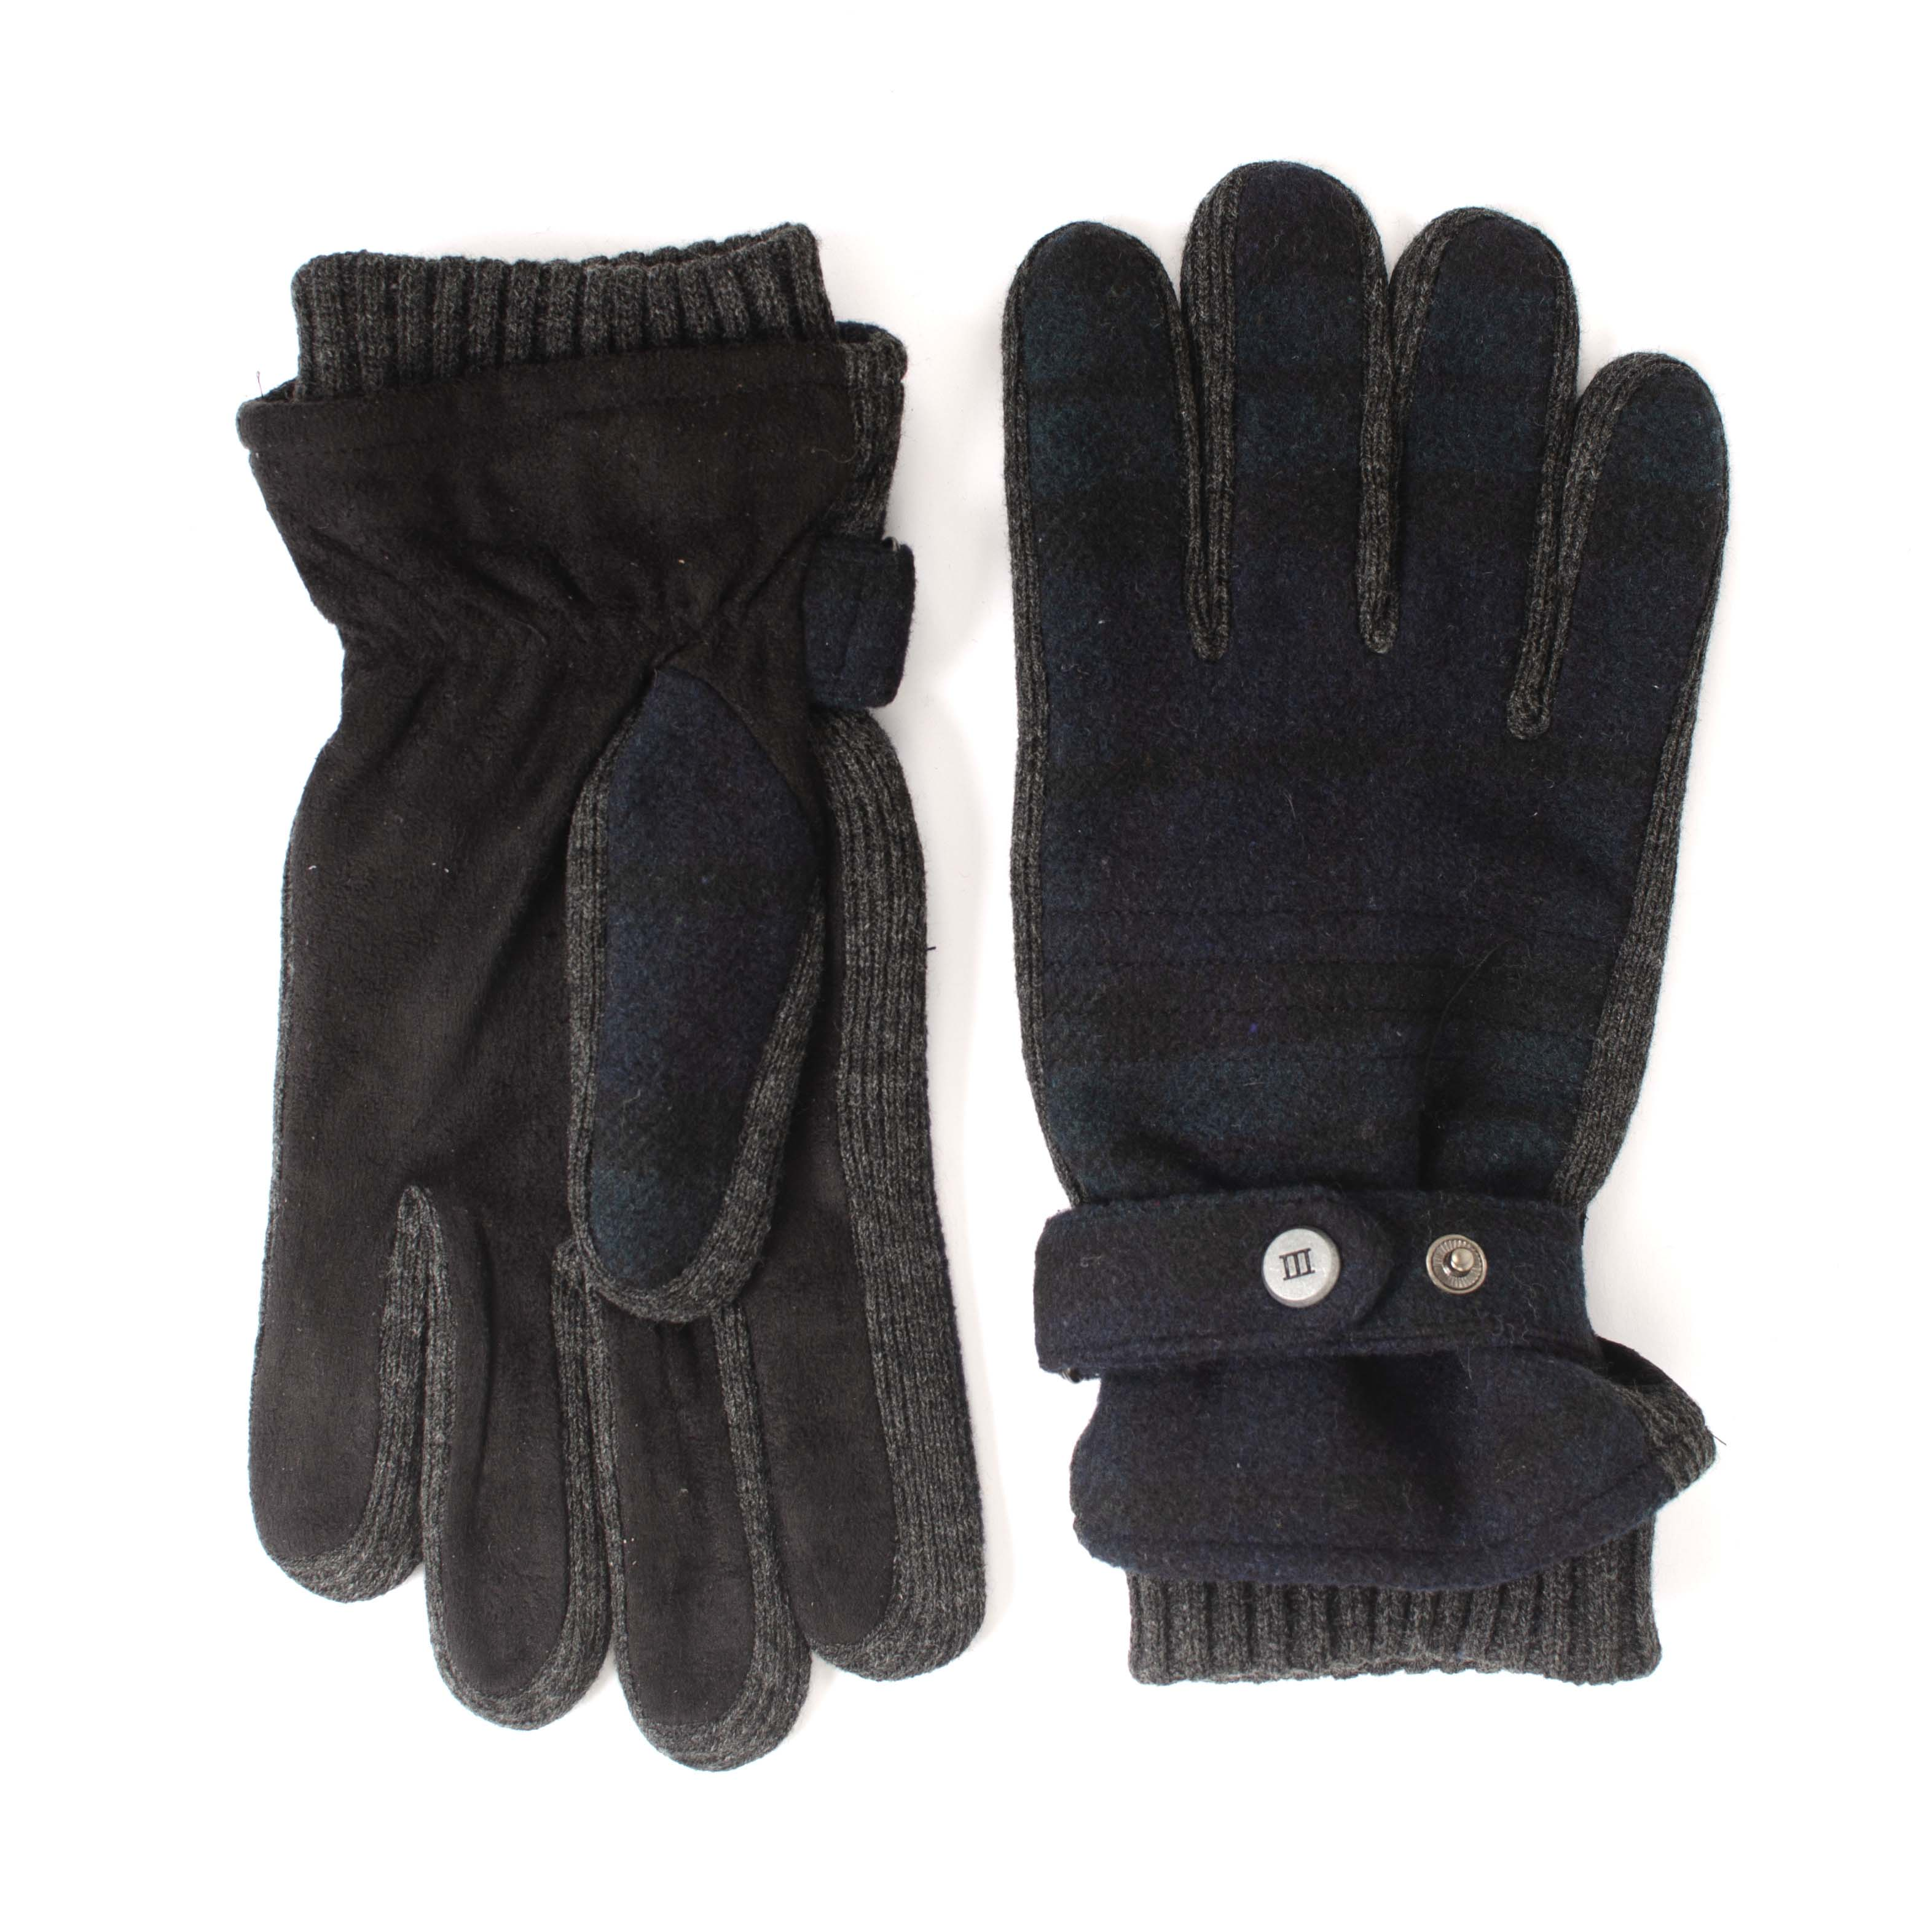 Joachim | Gloves green with navy check